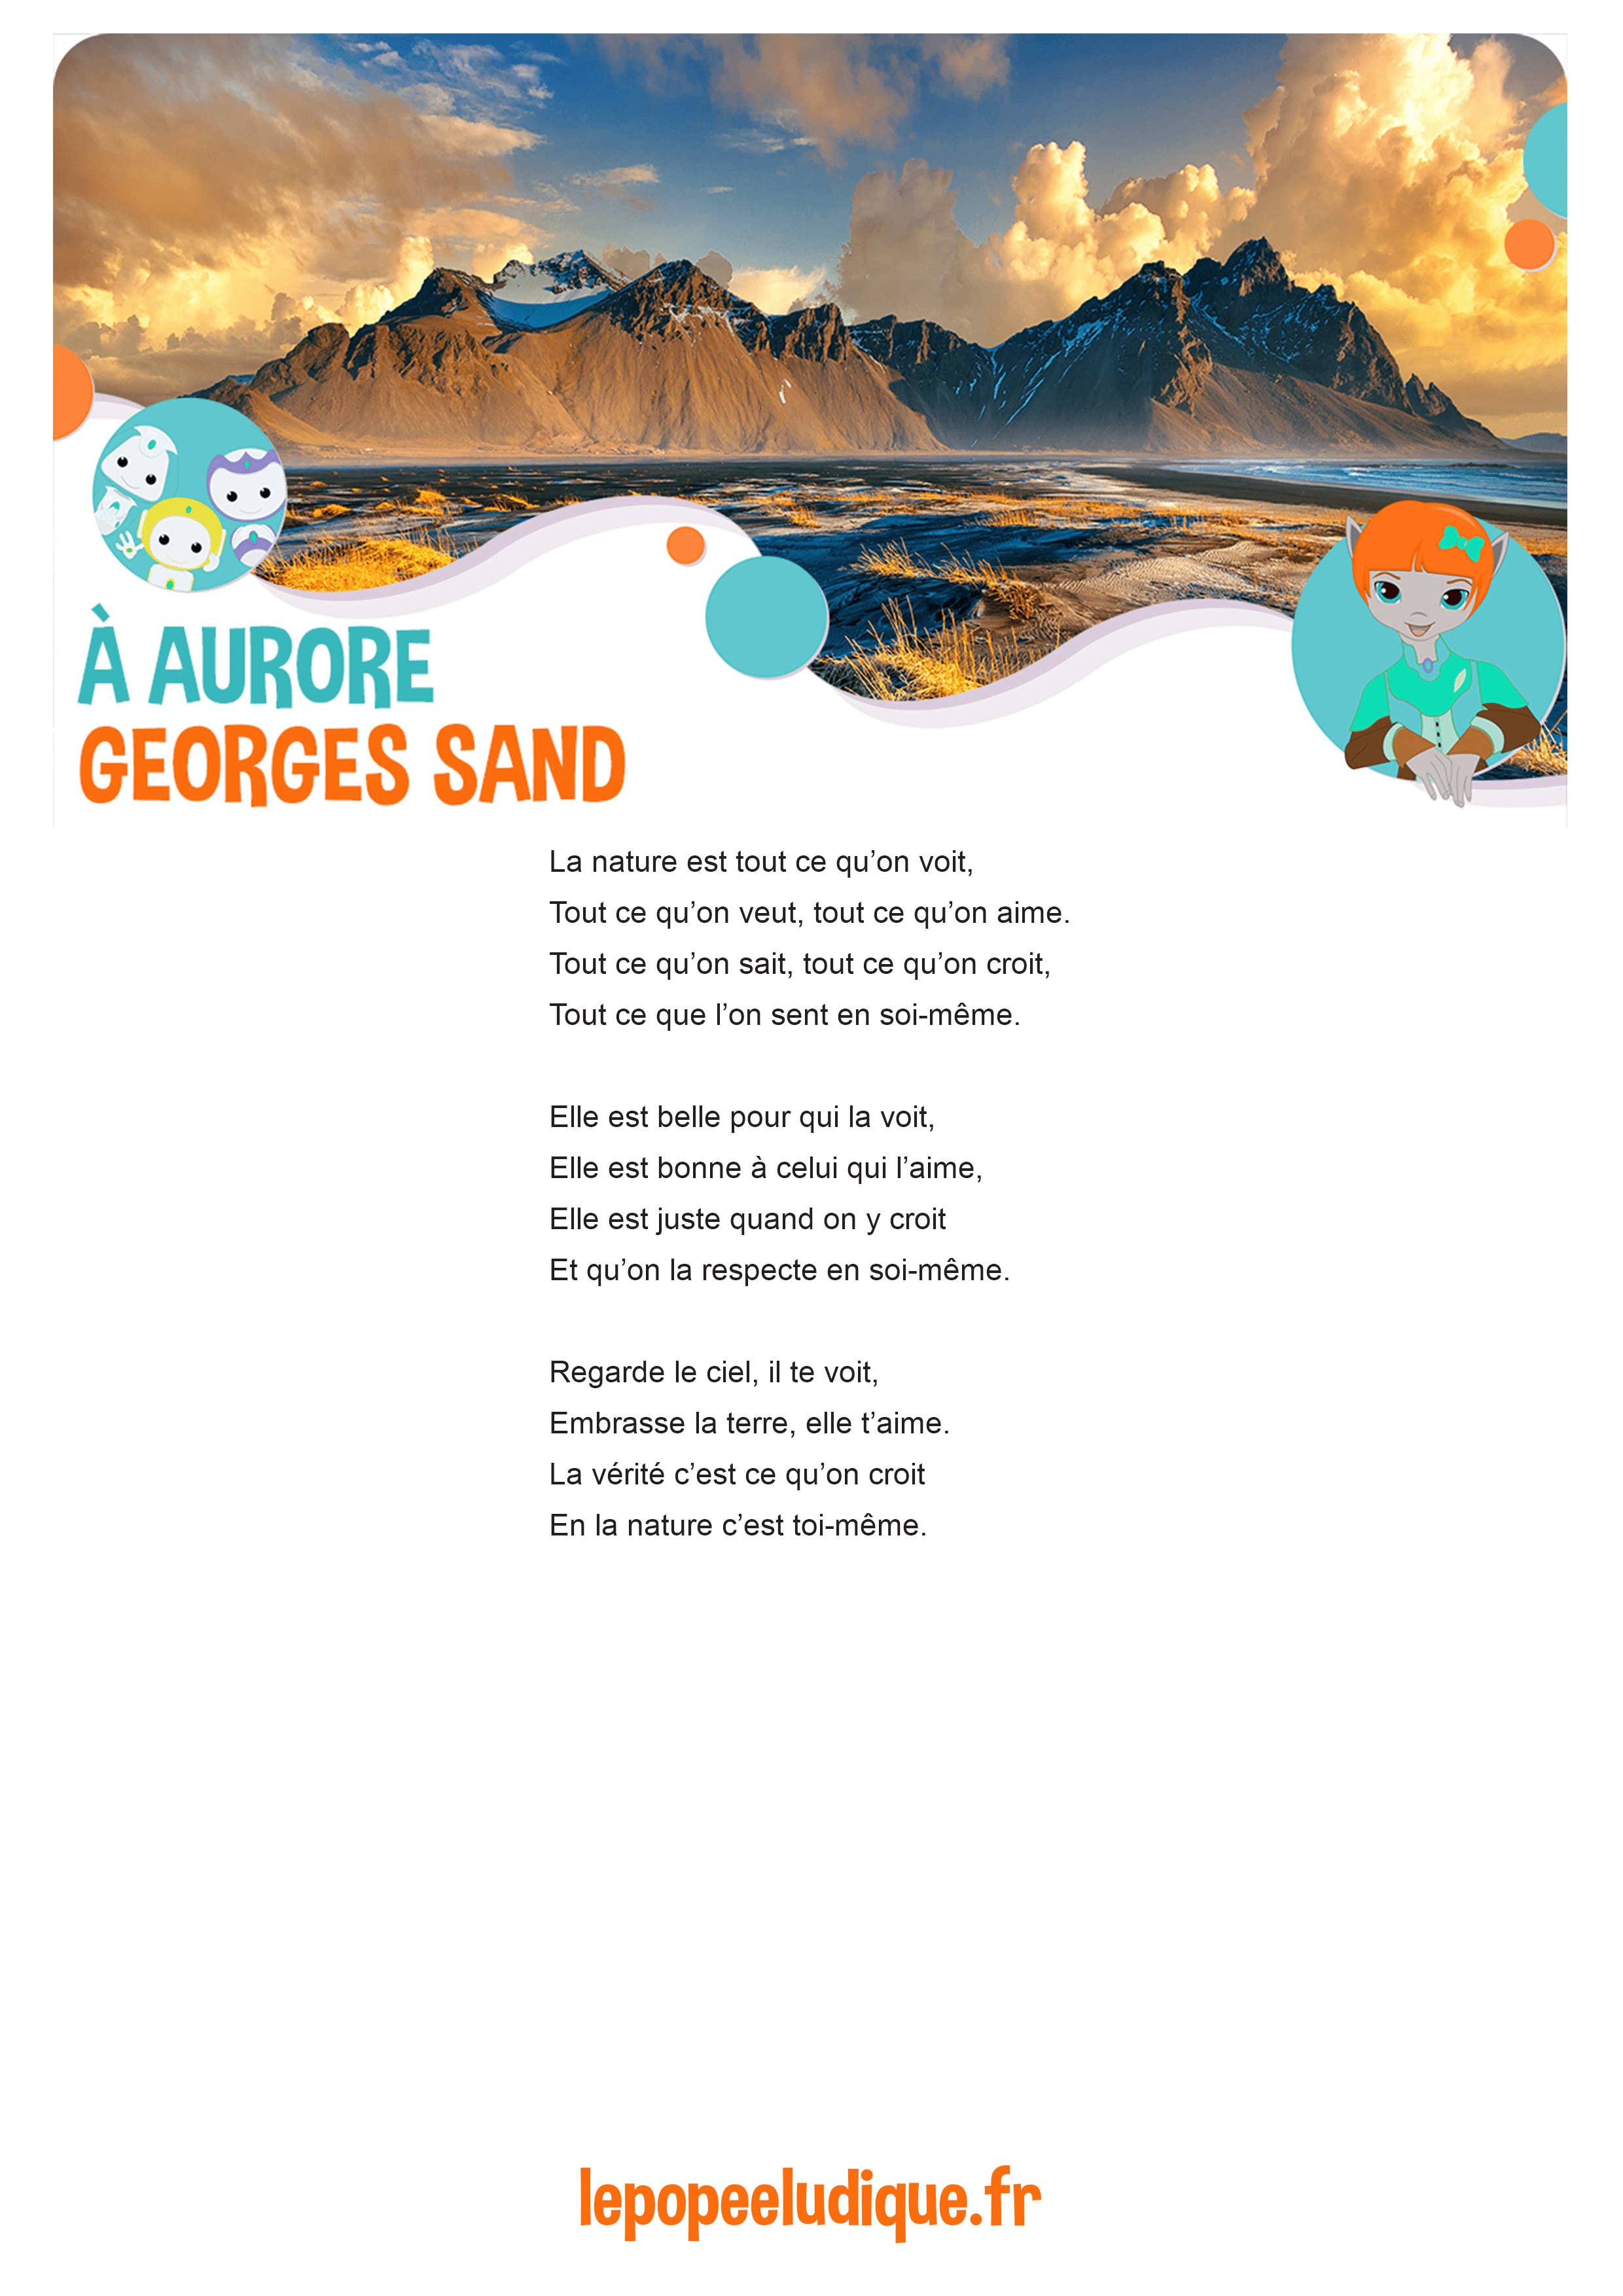 Poeme A Aurore Georges Sand